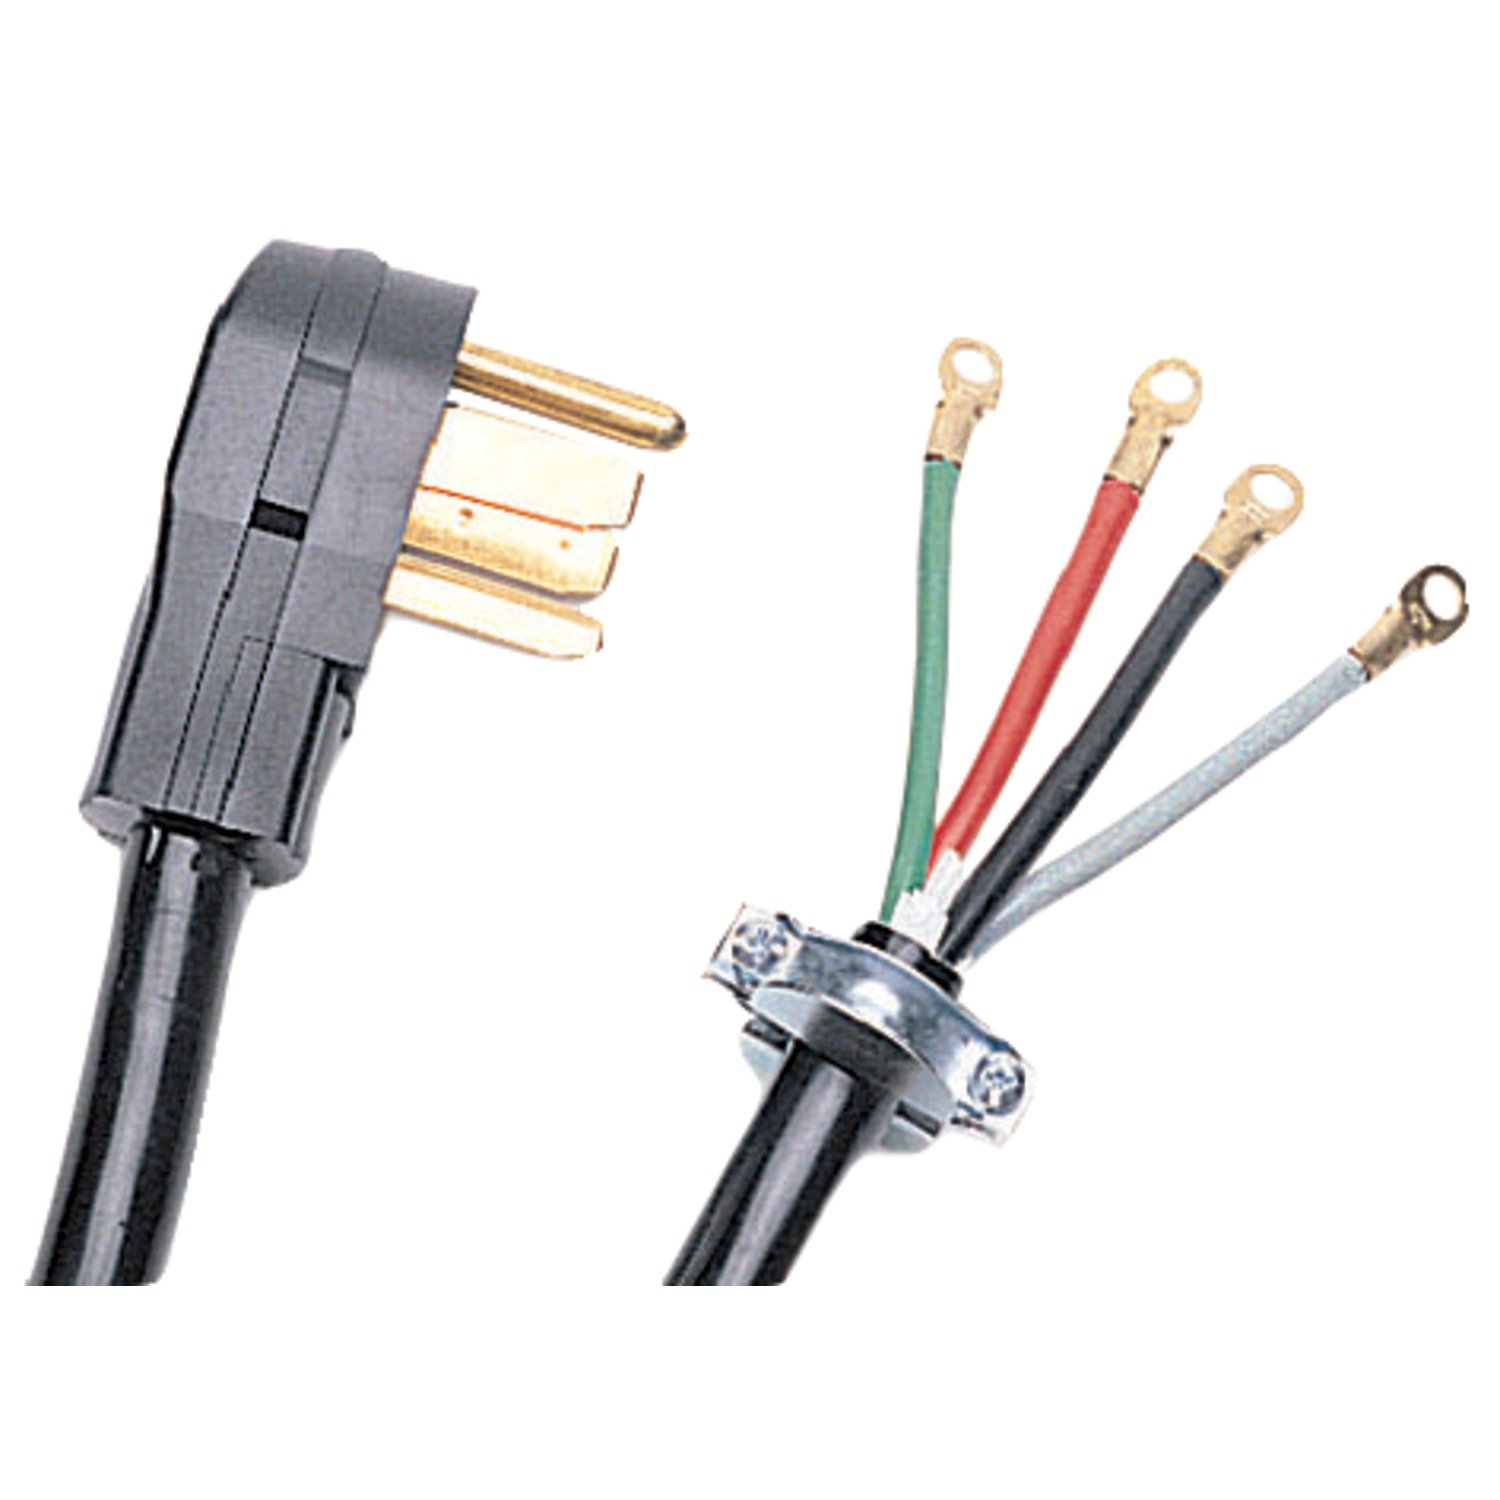 617jsJUbnvL._SL1500_ amazon com certified appliance 90 2028 4 wire dryer cord (10ft three prong plug wiring diagram at n-0.co